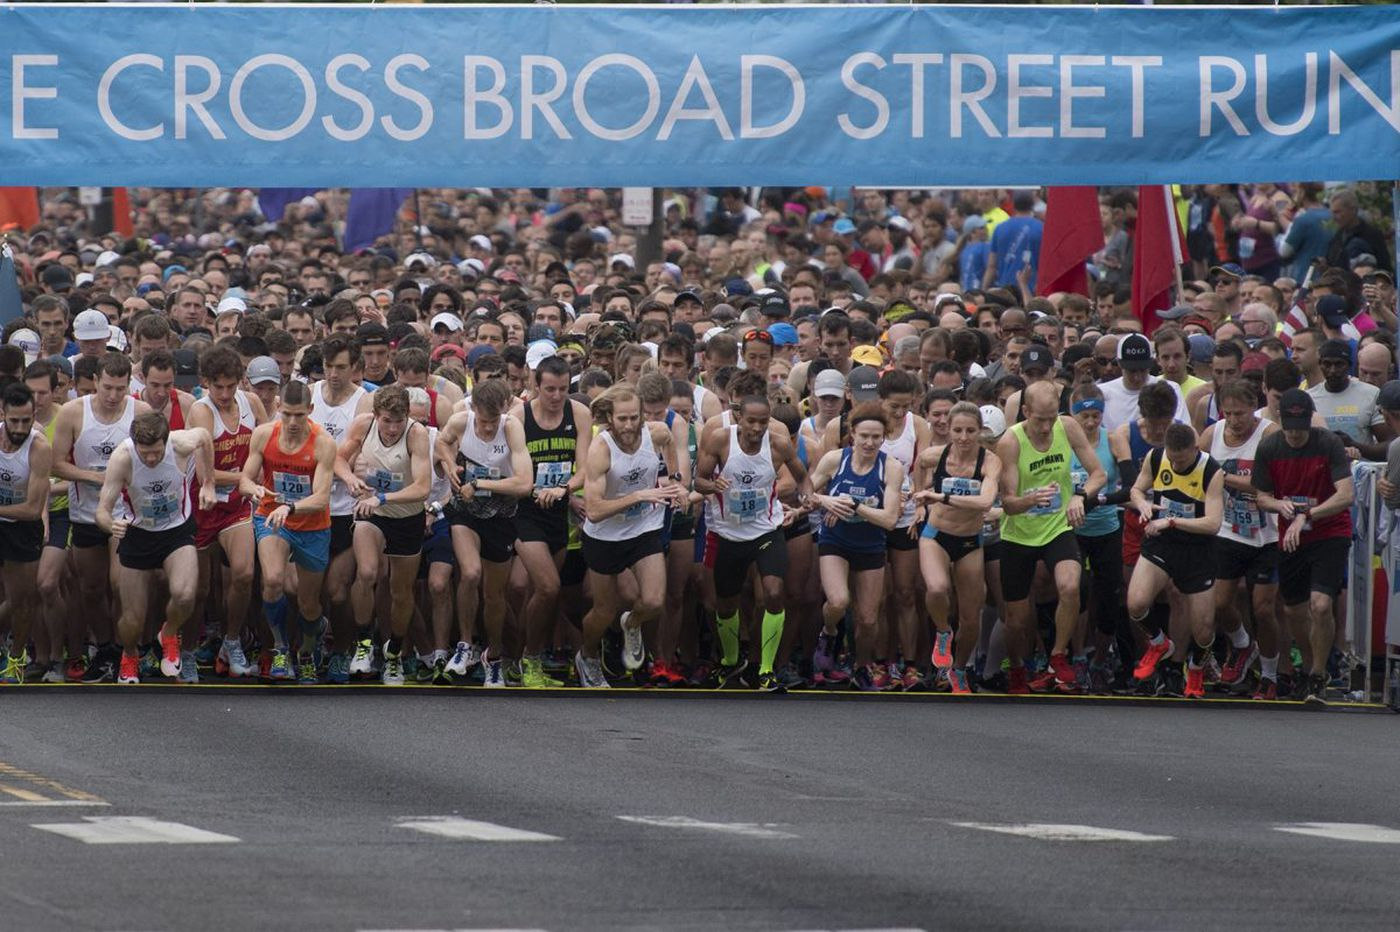 'Congratulations!! You did it.' Scenes from the Broad Street Run